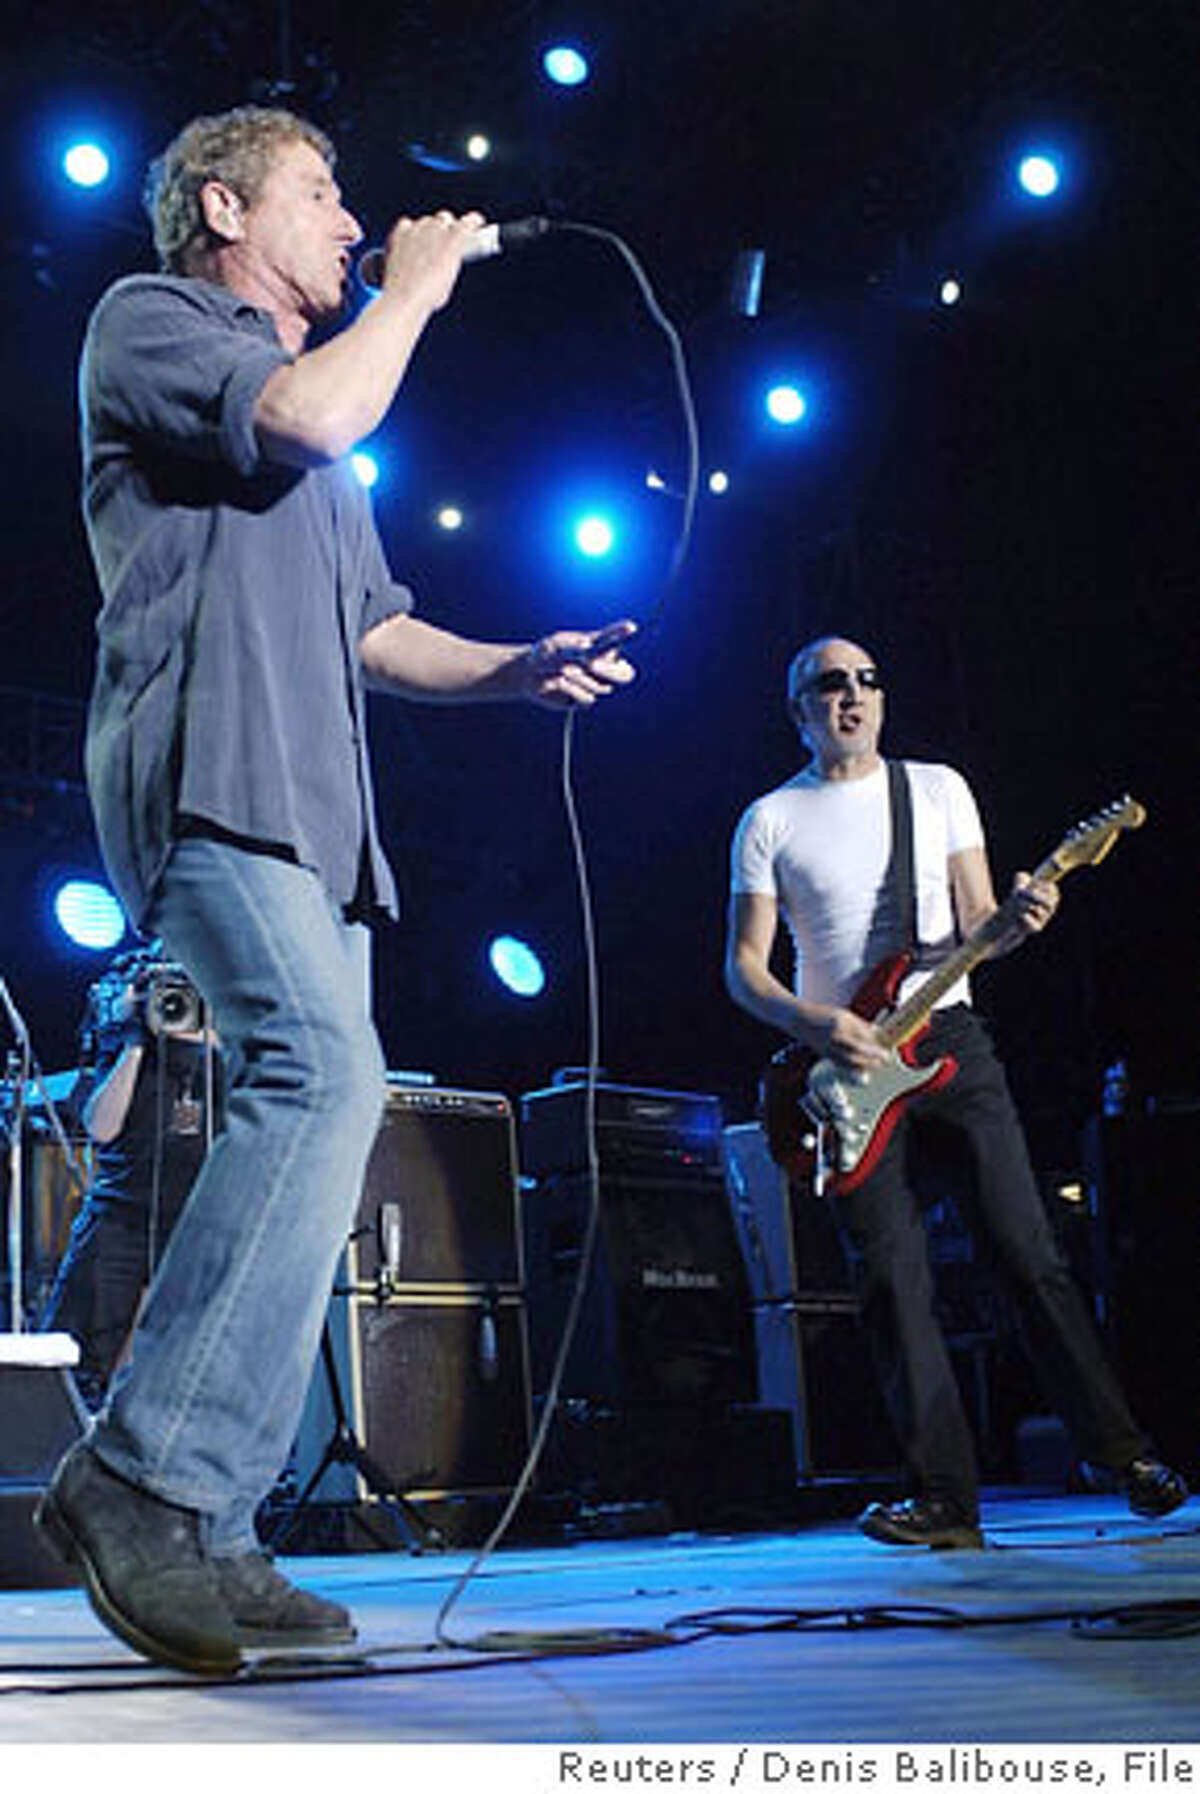 Roger Daltrey (L) and Pete Townshend from Britain's The Who perform during the Paleo festival in Nyon, Switzerland, July 21, 2006. REUTERS/Denis Balibouse (SWITZERLAND) Ran on: 08-11-2006 Roger Daltrey (left) and Pete Townshend of the Who will perform in San Jose on Nov. 8. Ran on: 11-05-2006 Keith Richards and Mick Jagger of the Rolling Stones played Boston in August 2005.